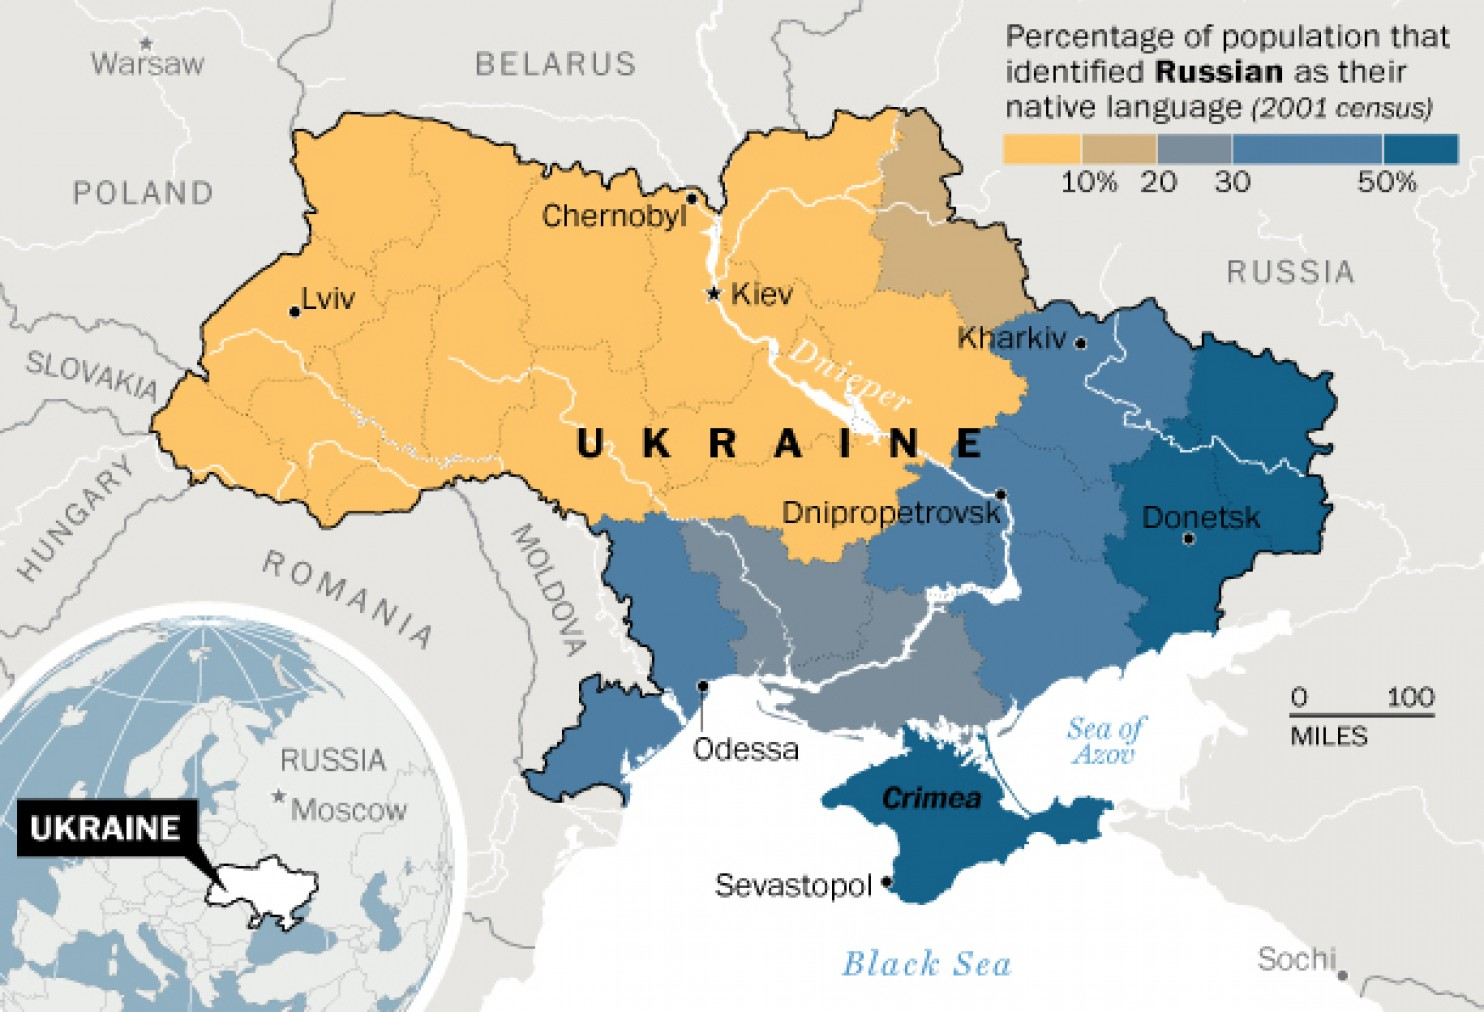 Ukraine Became Independent In 1991 After The Soviet Union Collapsed New Rulers Established A National Church To Mirror Countries With Political